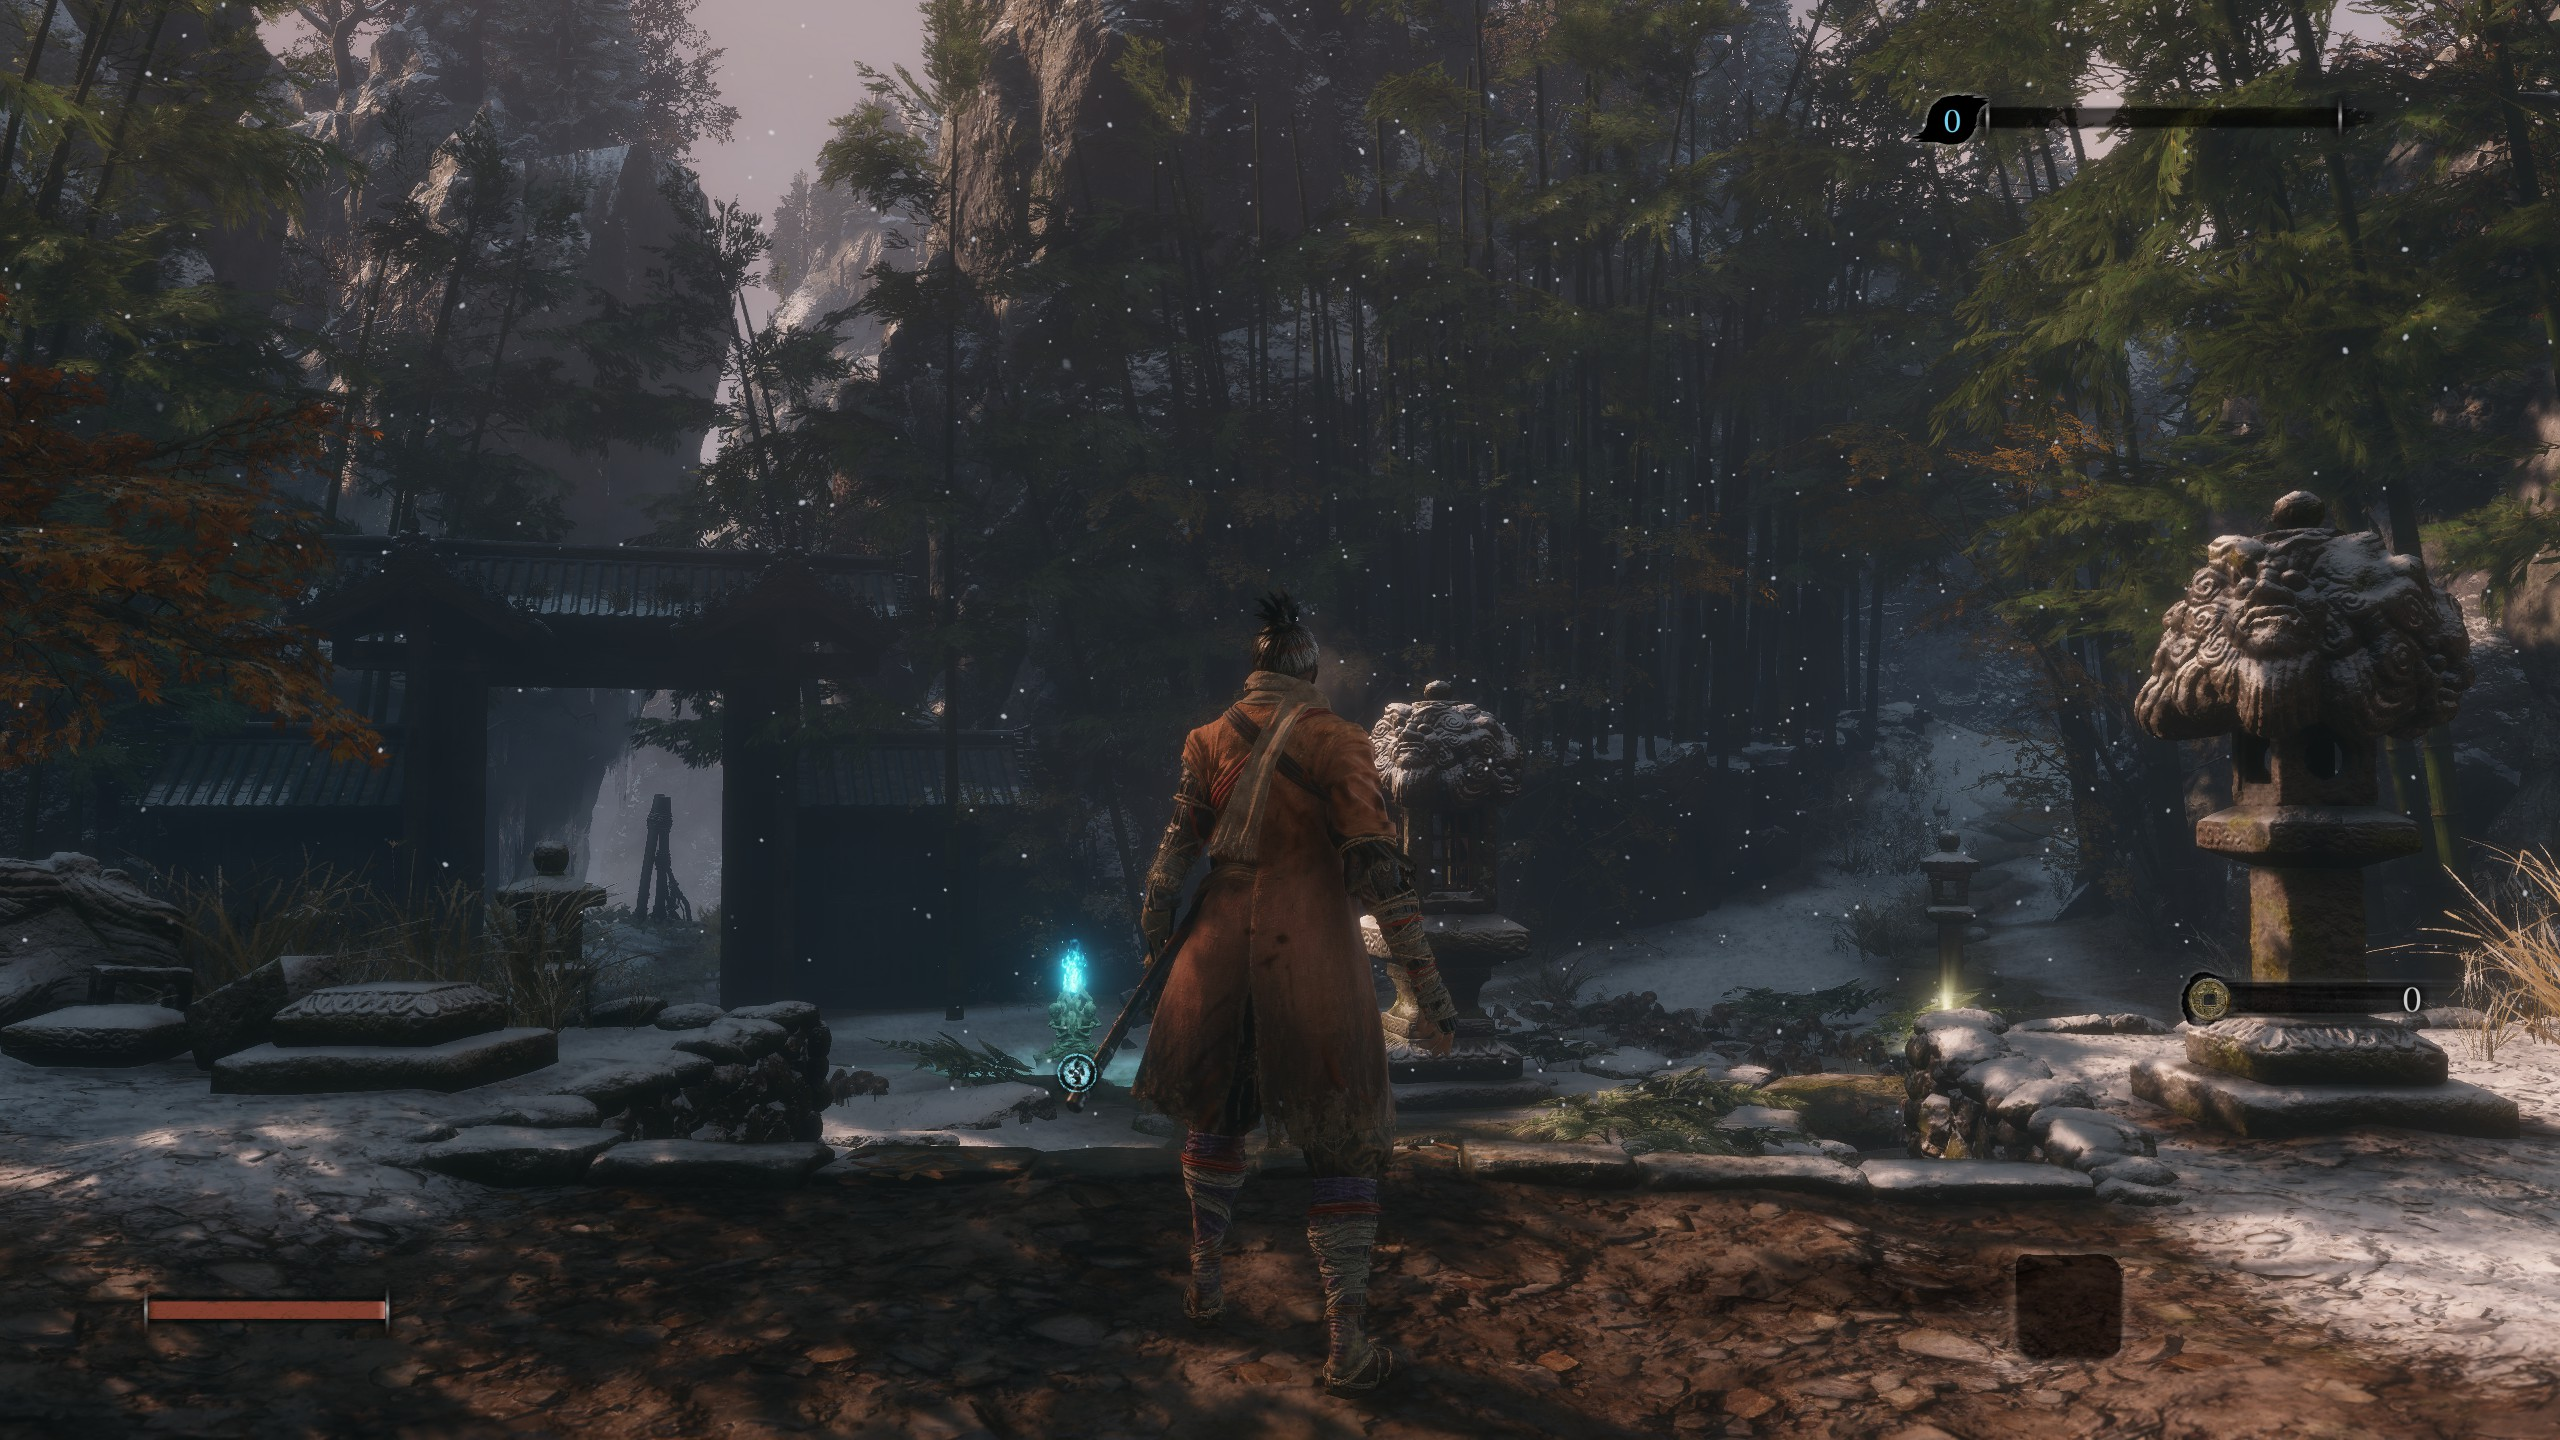 Sekiro: Shadows Die Twice PC graphics performance: How to get the